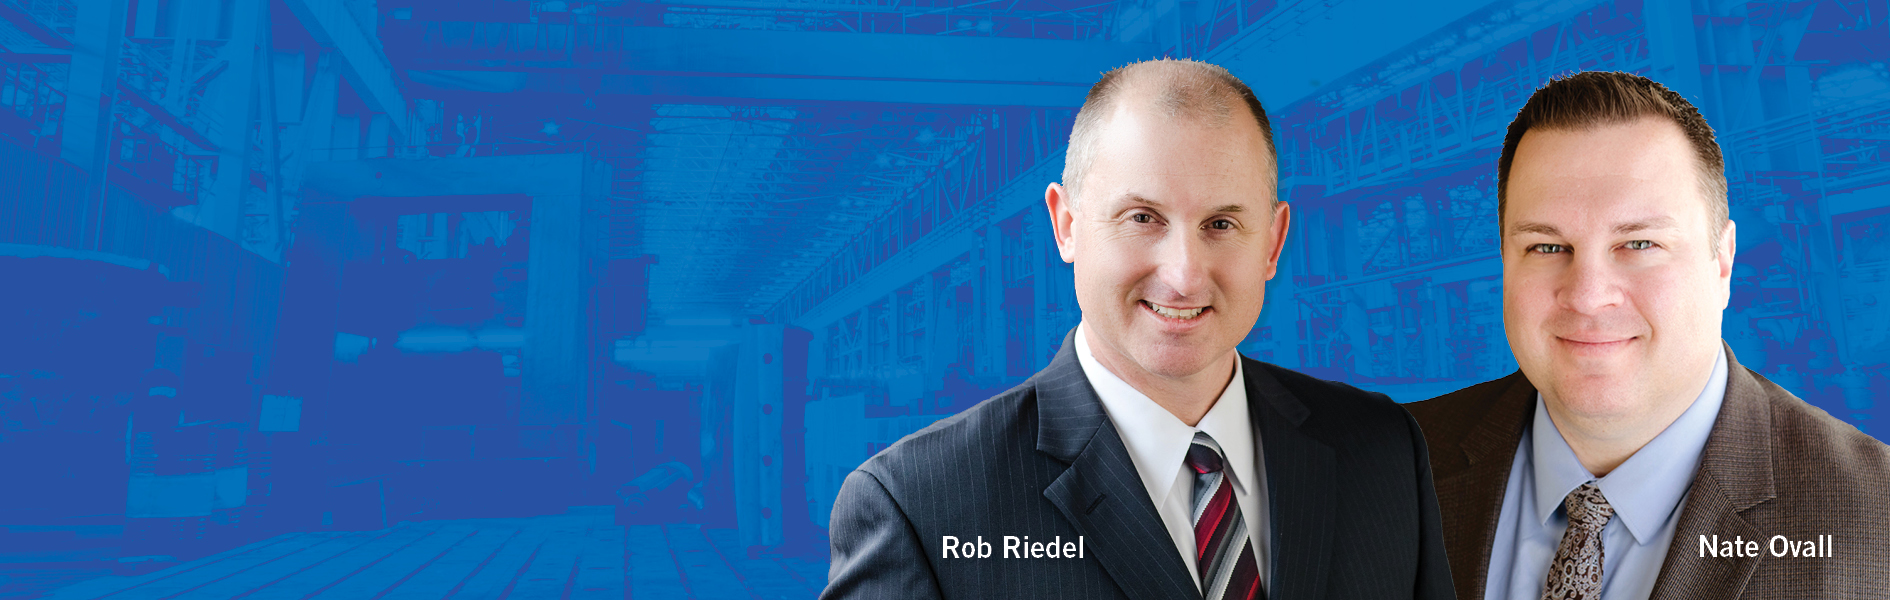 Commercial Lenders Rob Riedel and Nate Ovall